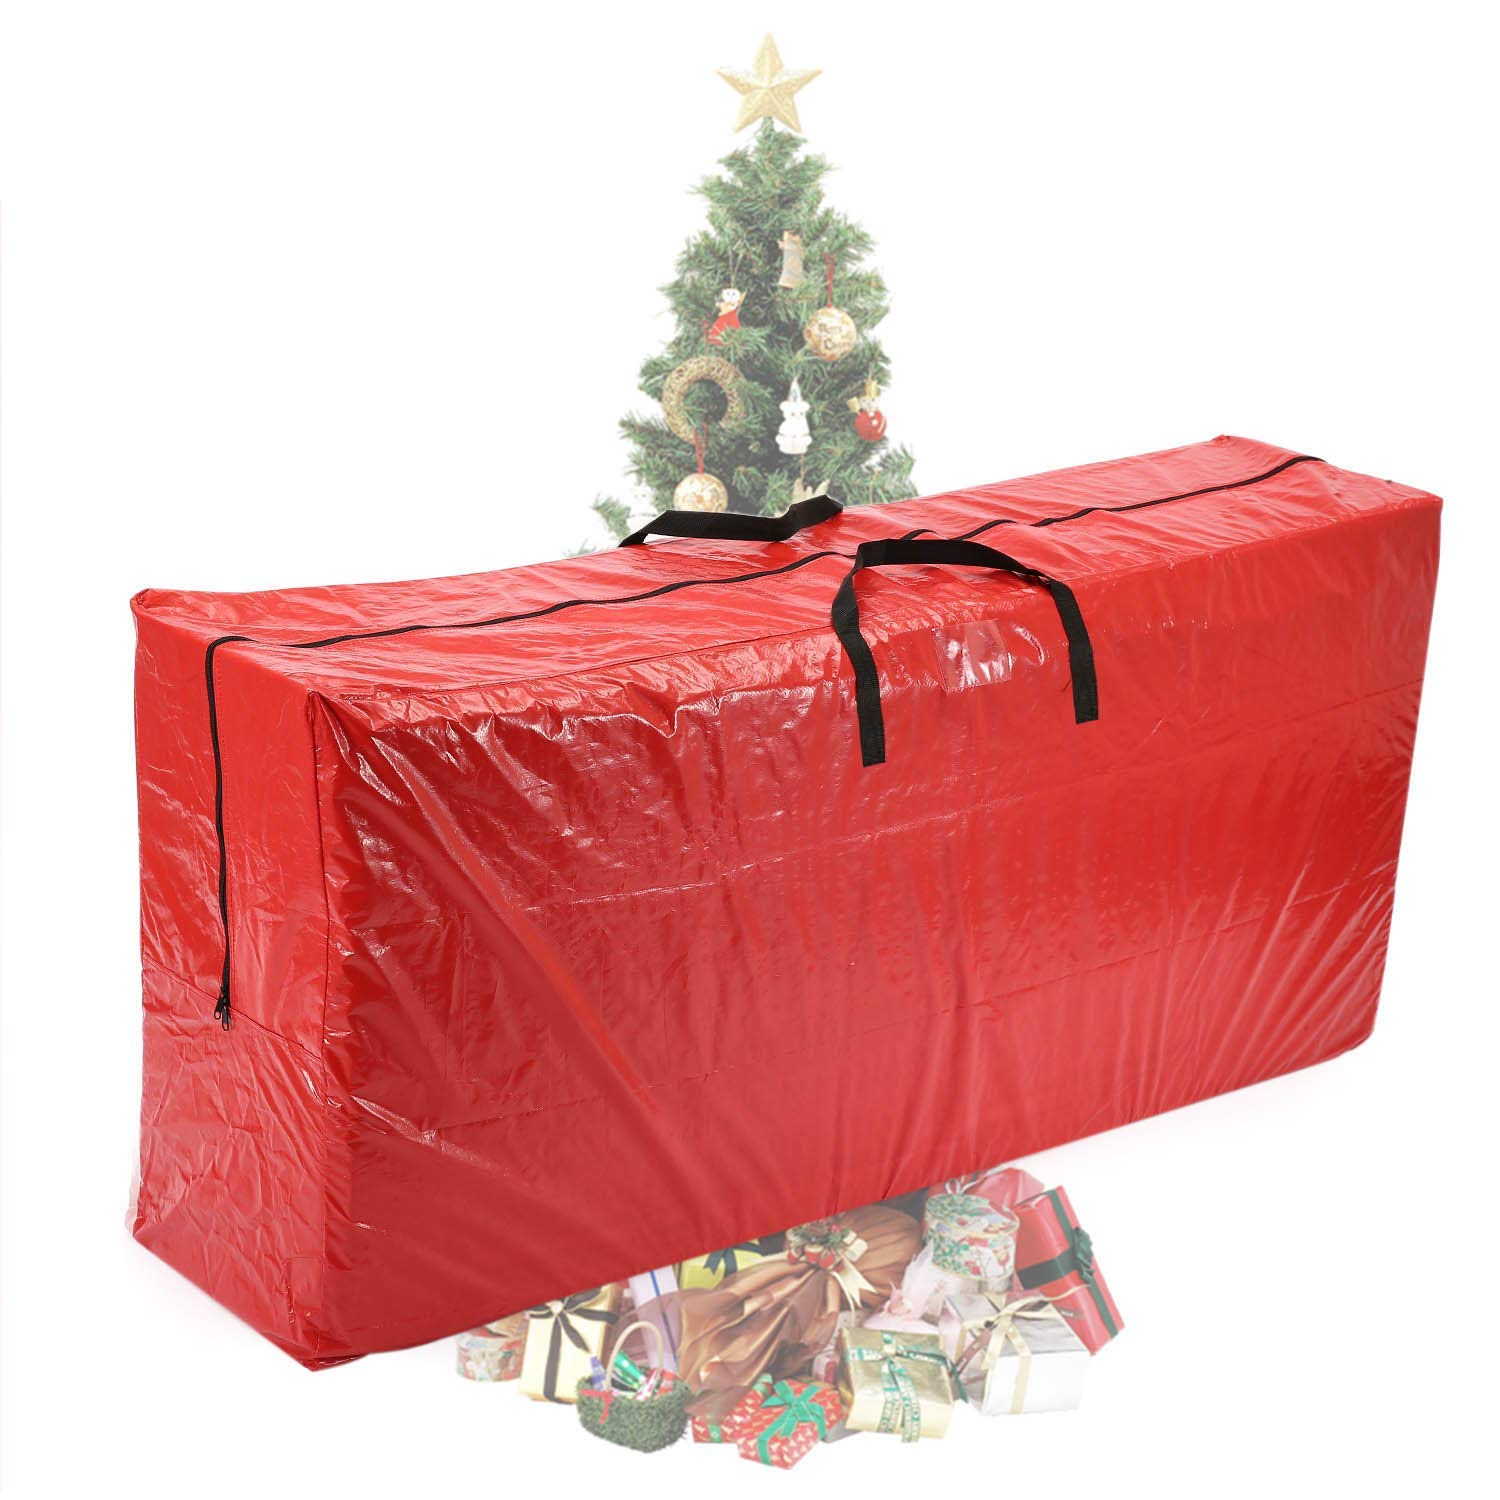 """Renewed Vencer Red Extra Large Christmas Tree Bag for 9 Foot Tree Holiday 65 x 30/"""" x 15,VHO-001"""